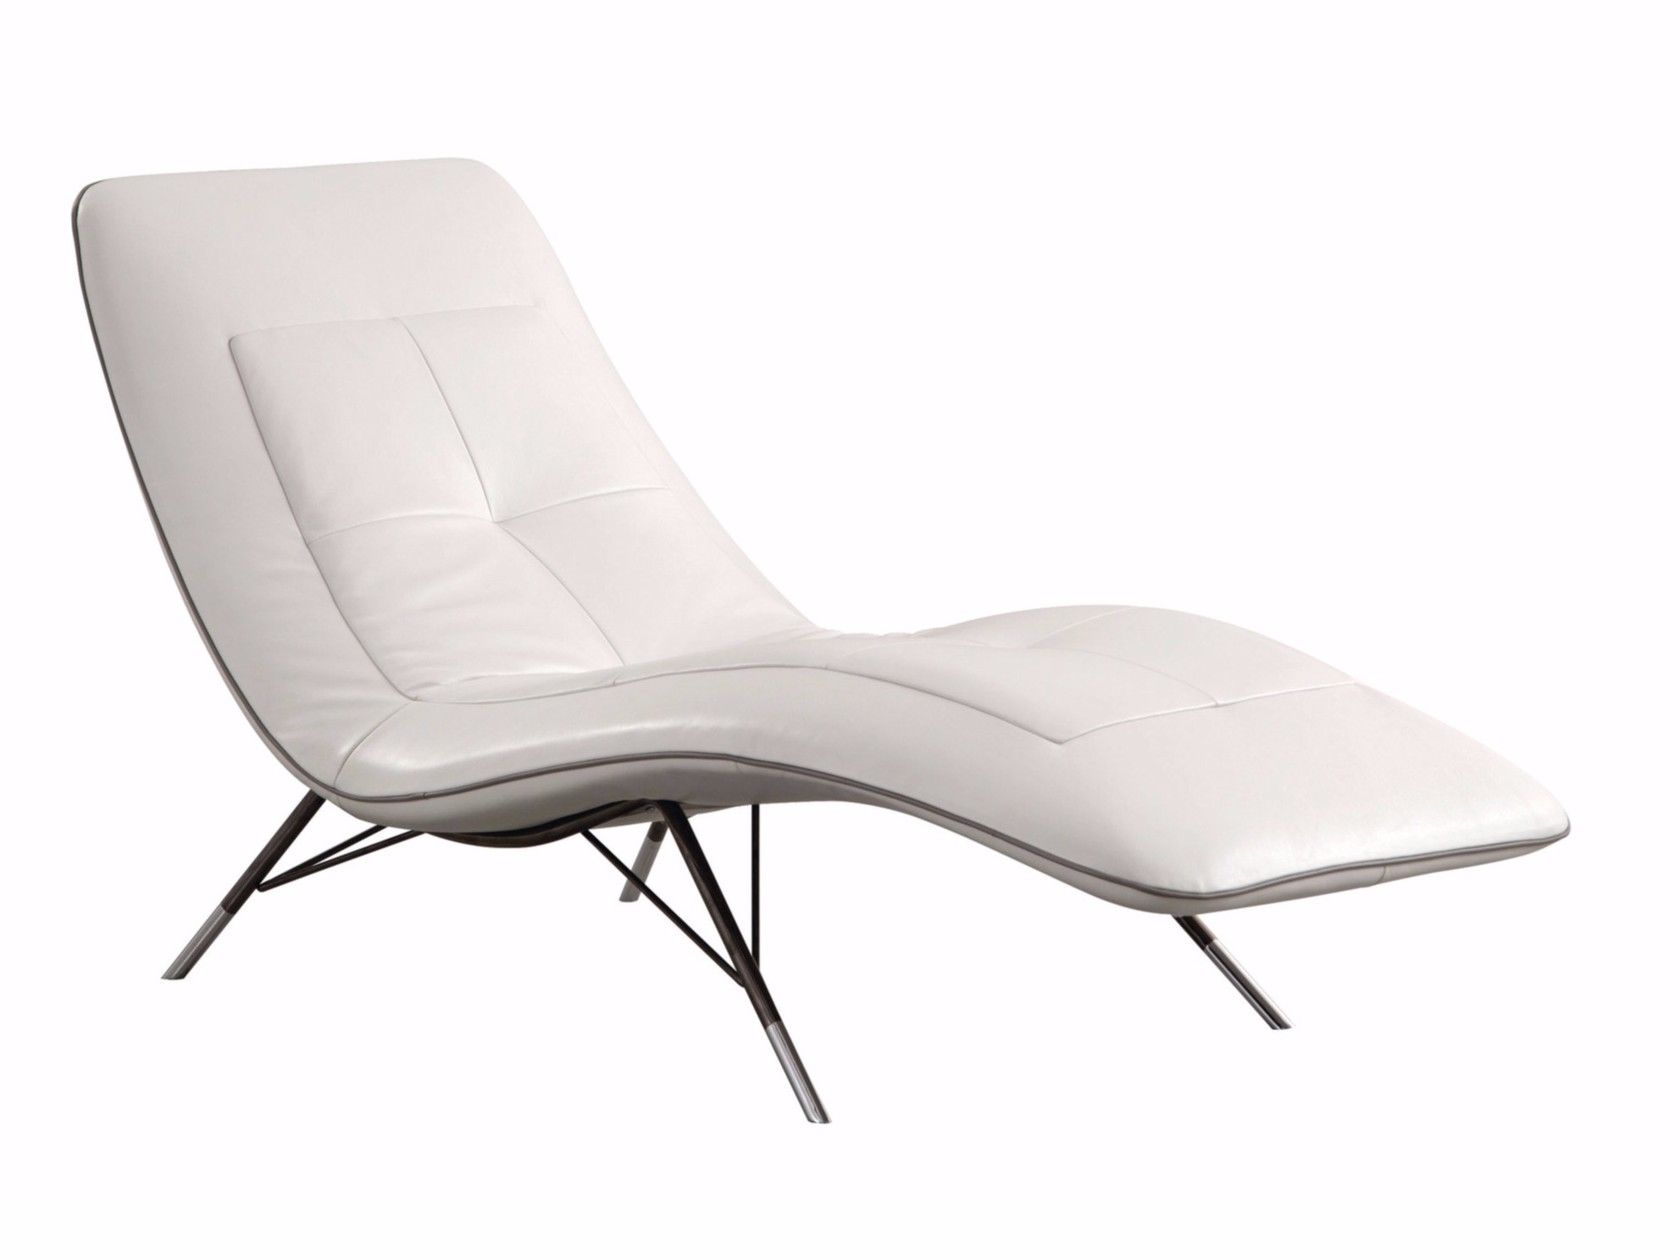 Upholstered Leather Lounge Chair Solaris By Roche Bobois Contemporary Chaise Lounge Chairs Leather Chaise Padded Lounge Chair